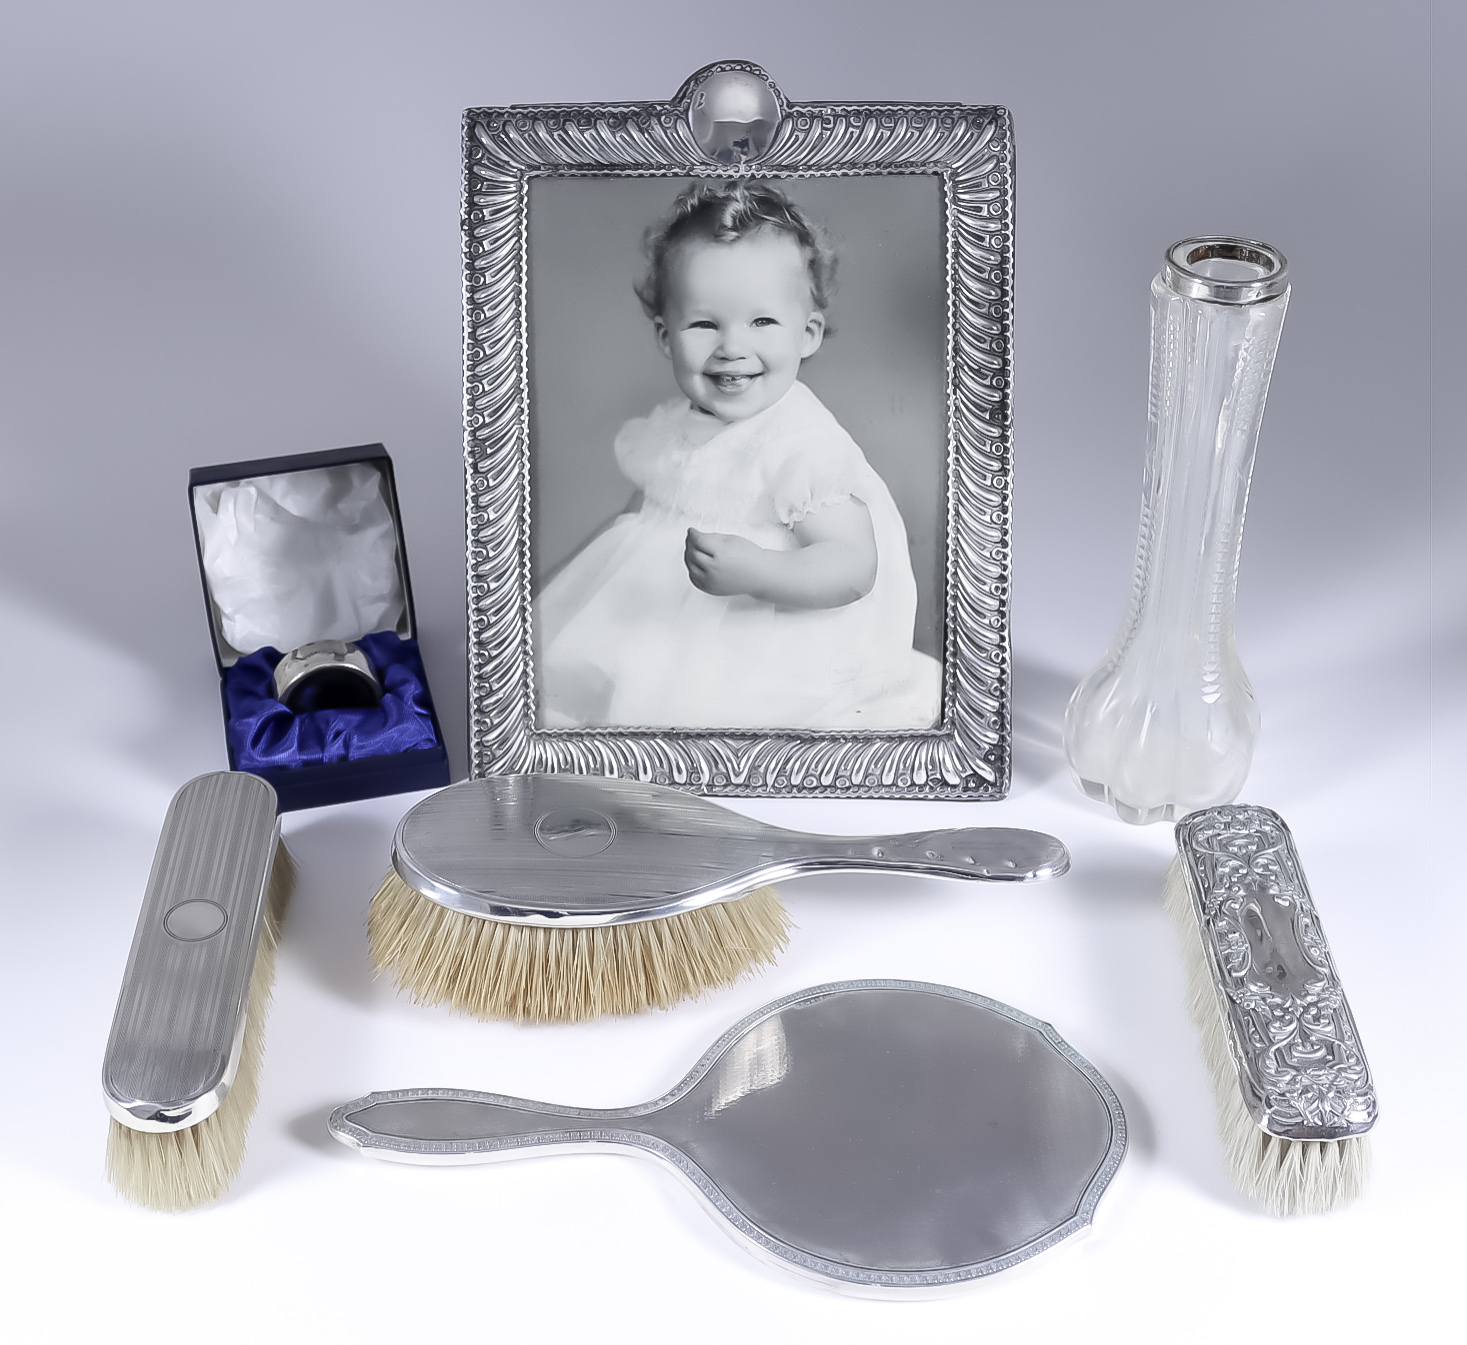 A Late Victorian Silver Rectangular Photograph Frame and Mixed Silverware, the frame by William